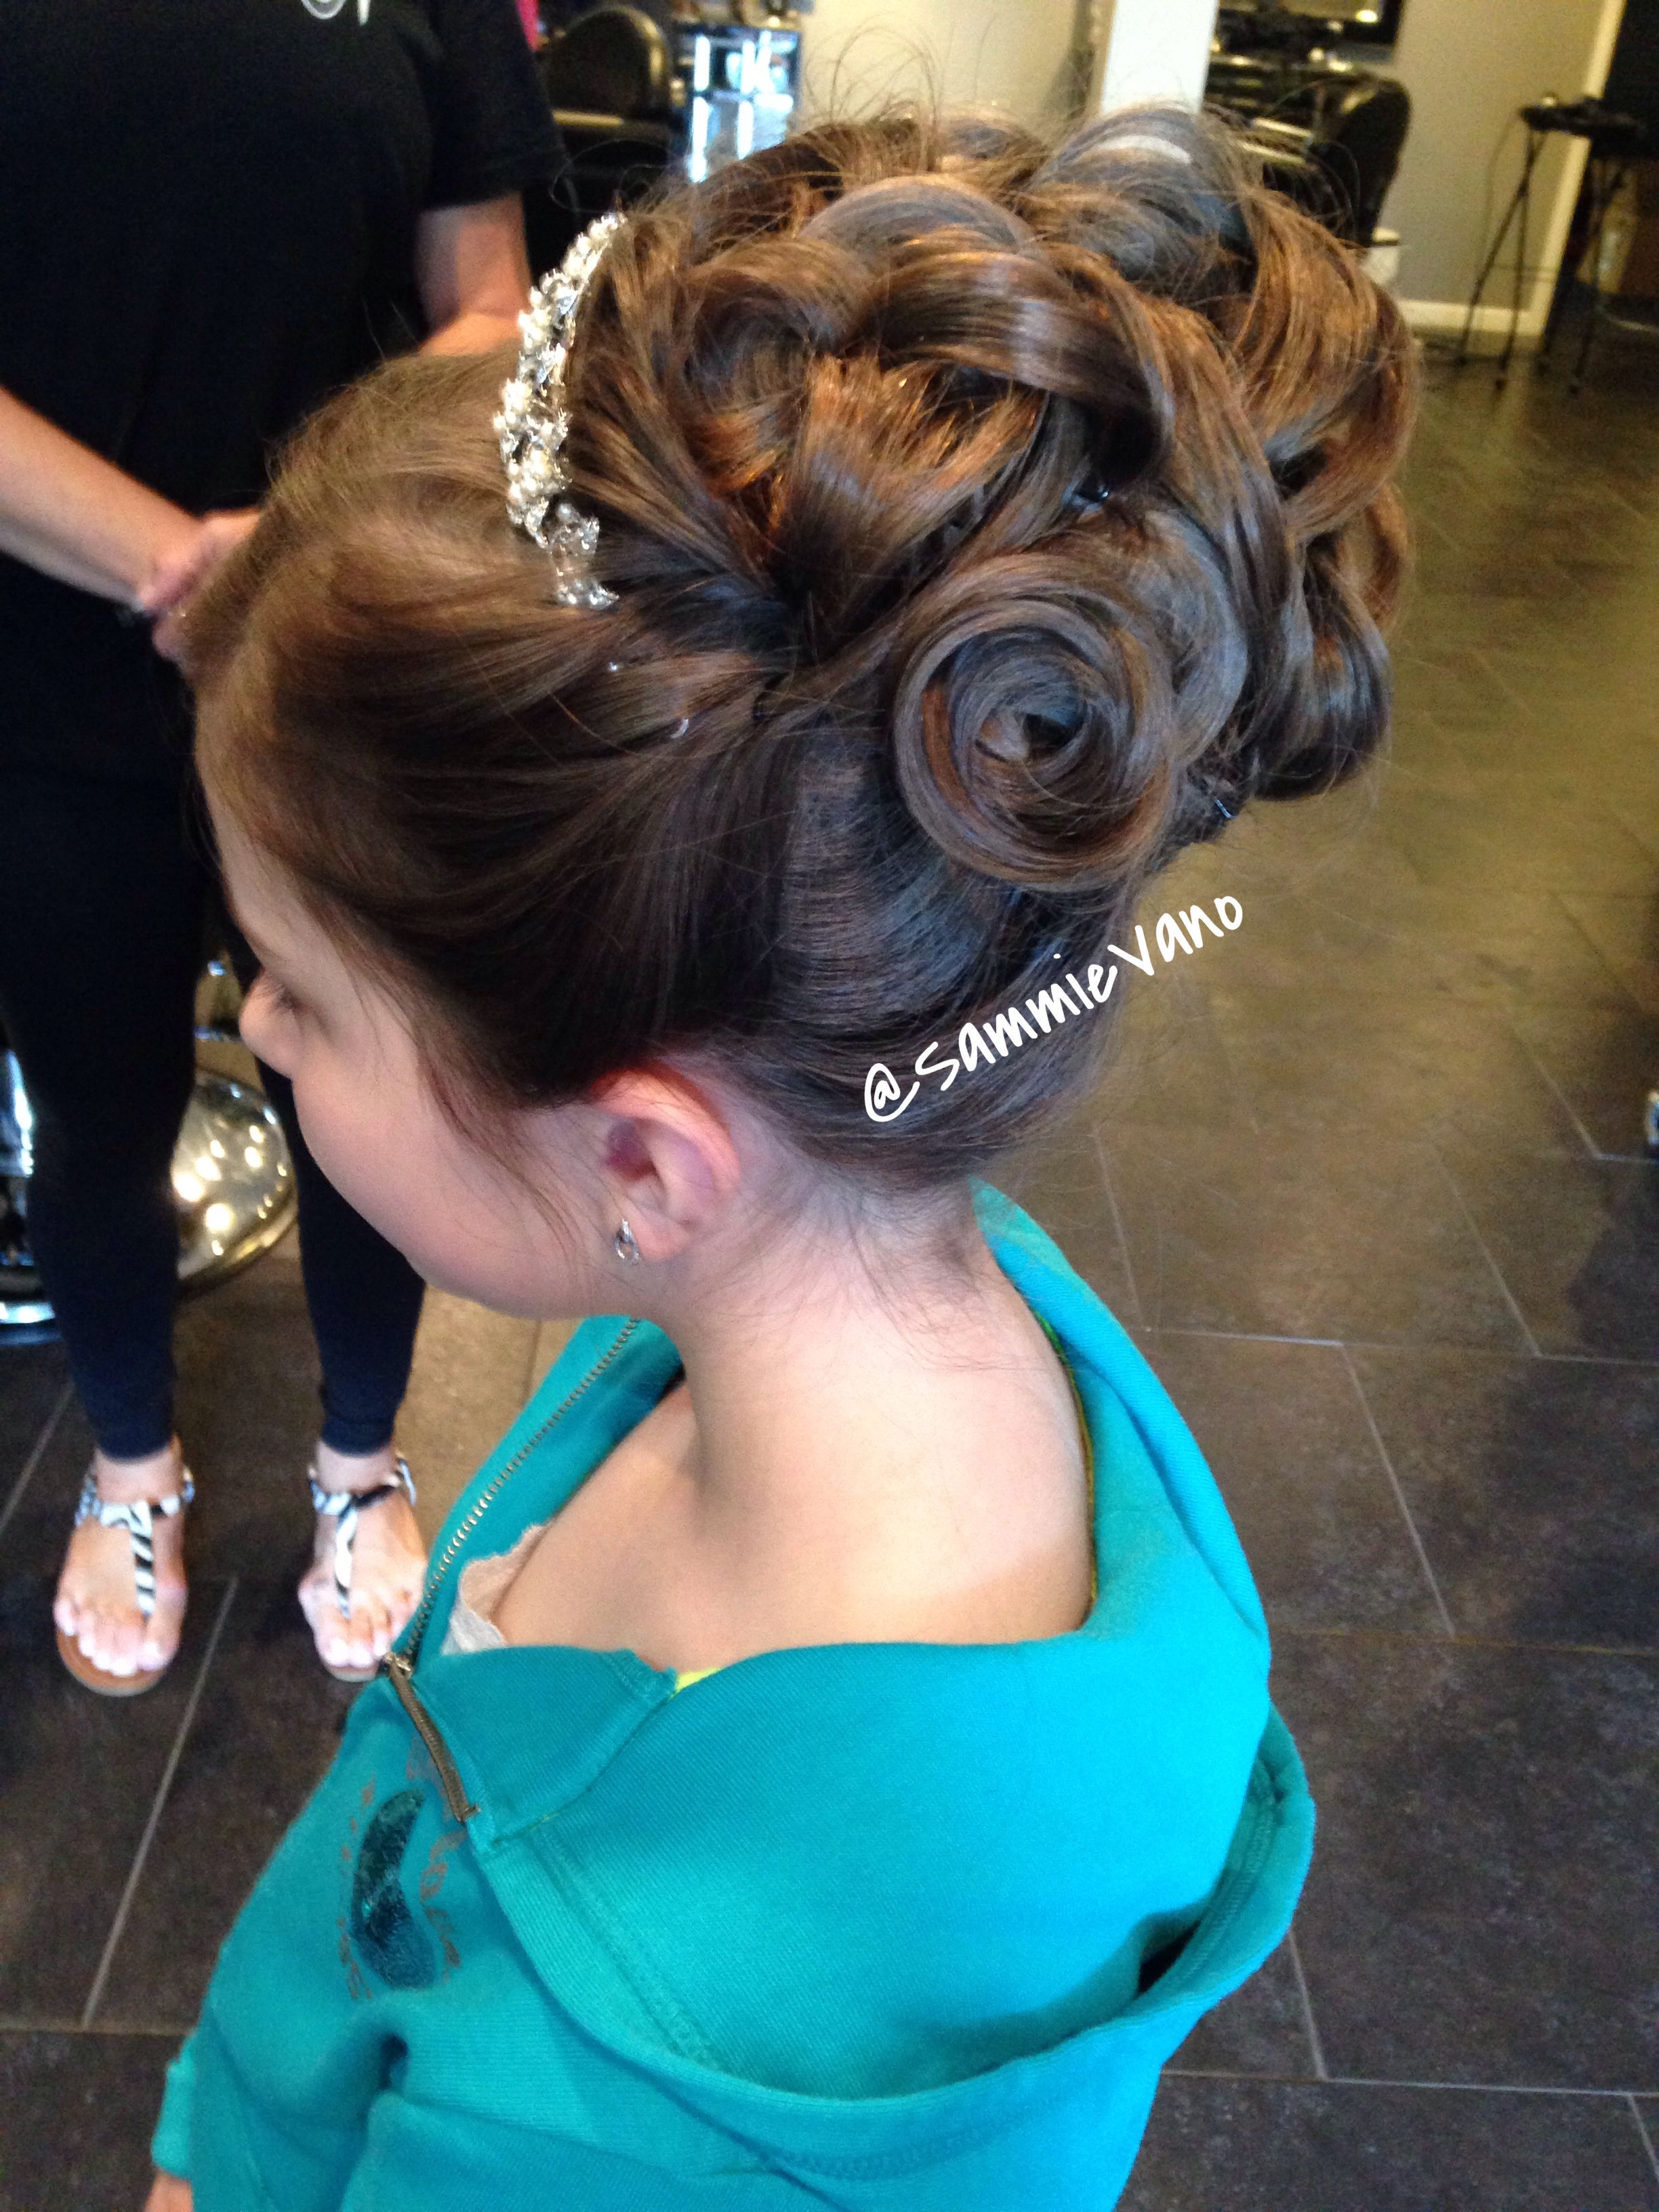 Communion Girl Updo Upstyle Hair Flower Girl Hairstyles Updo Girls Updo First Communion Hairstyles